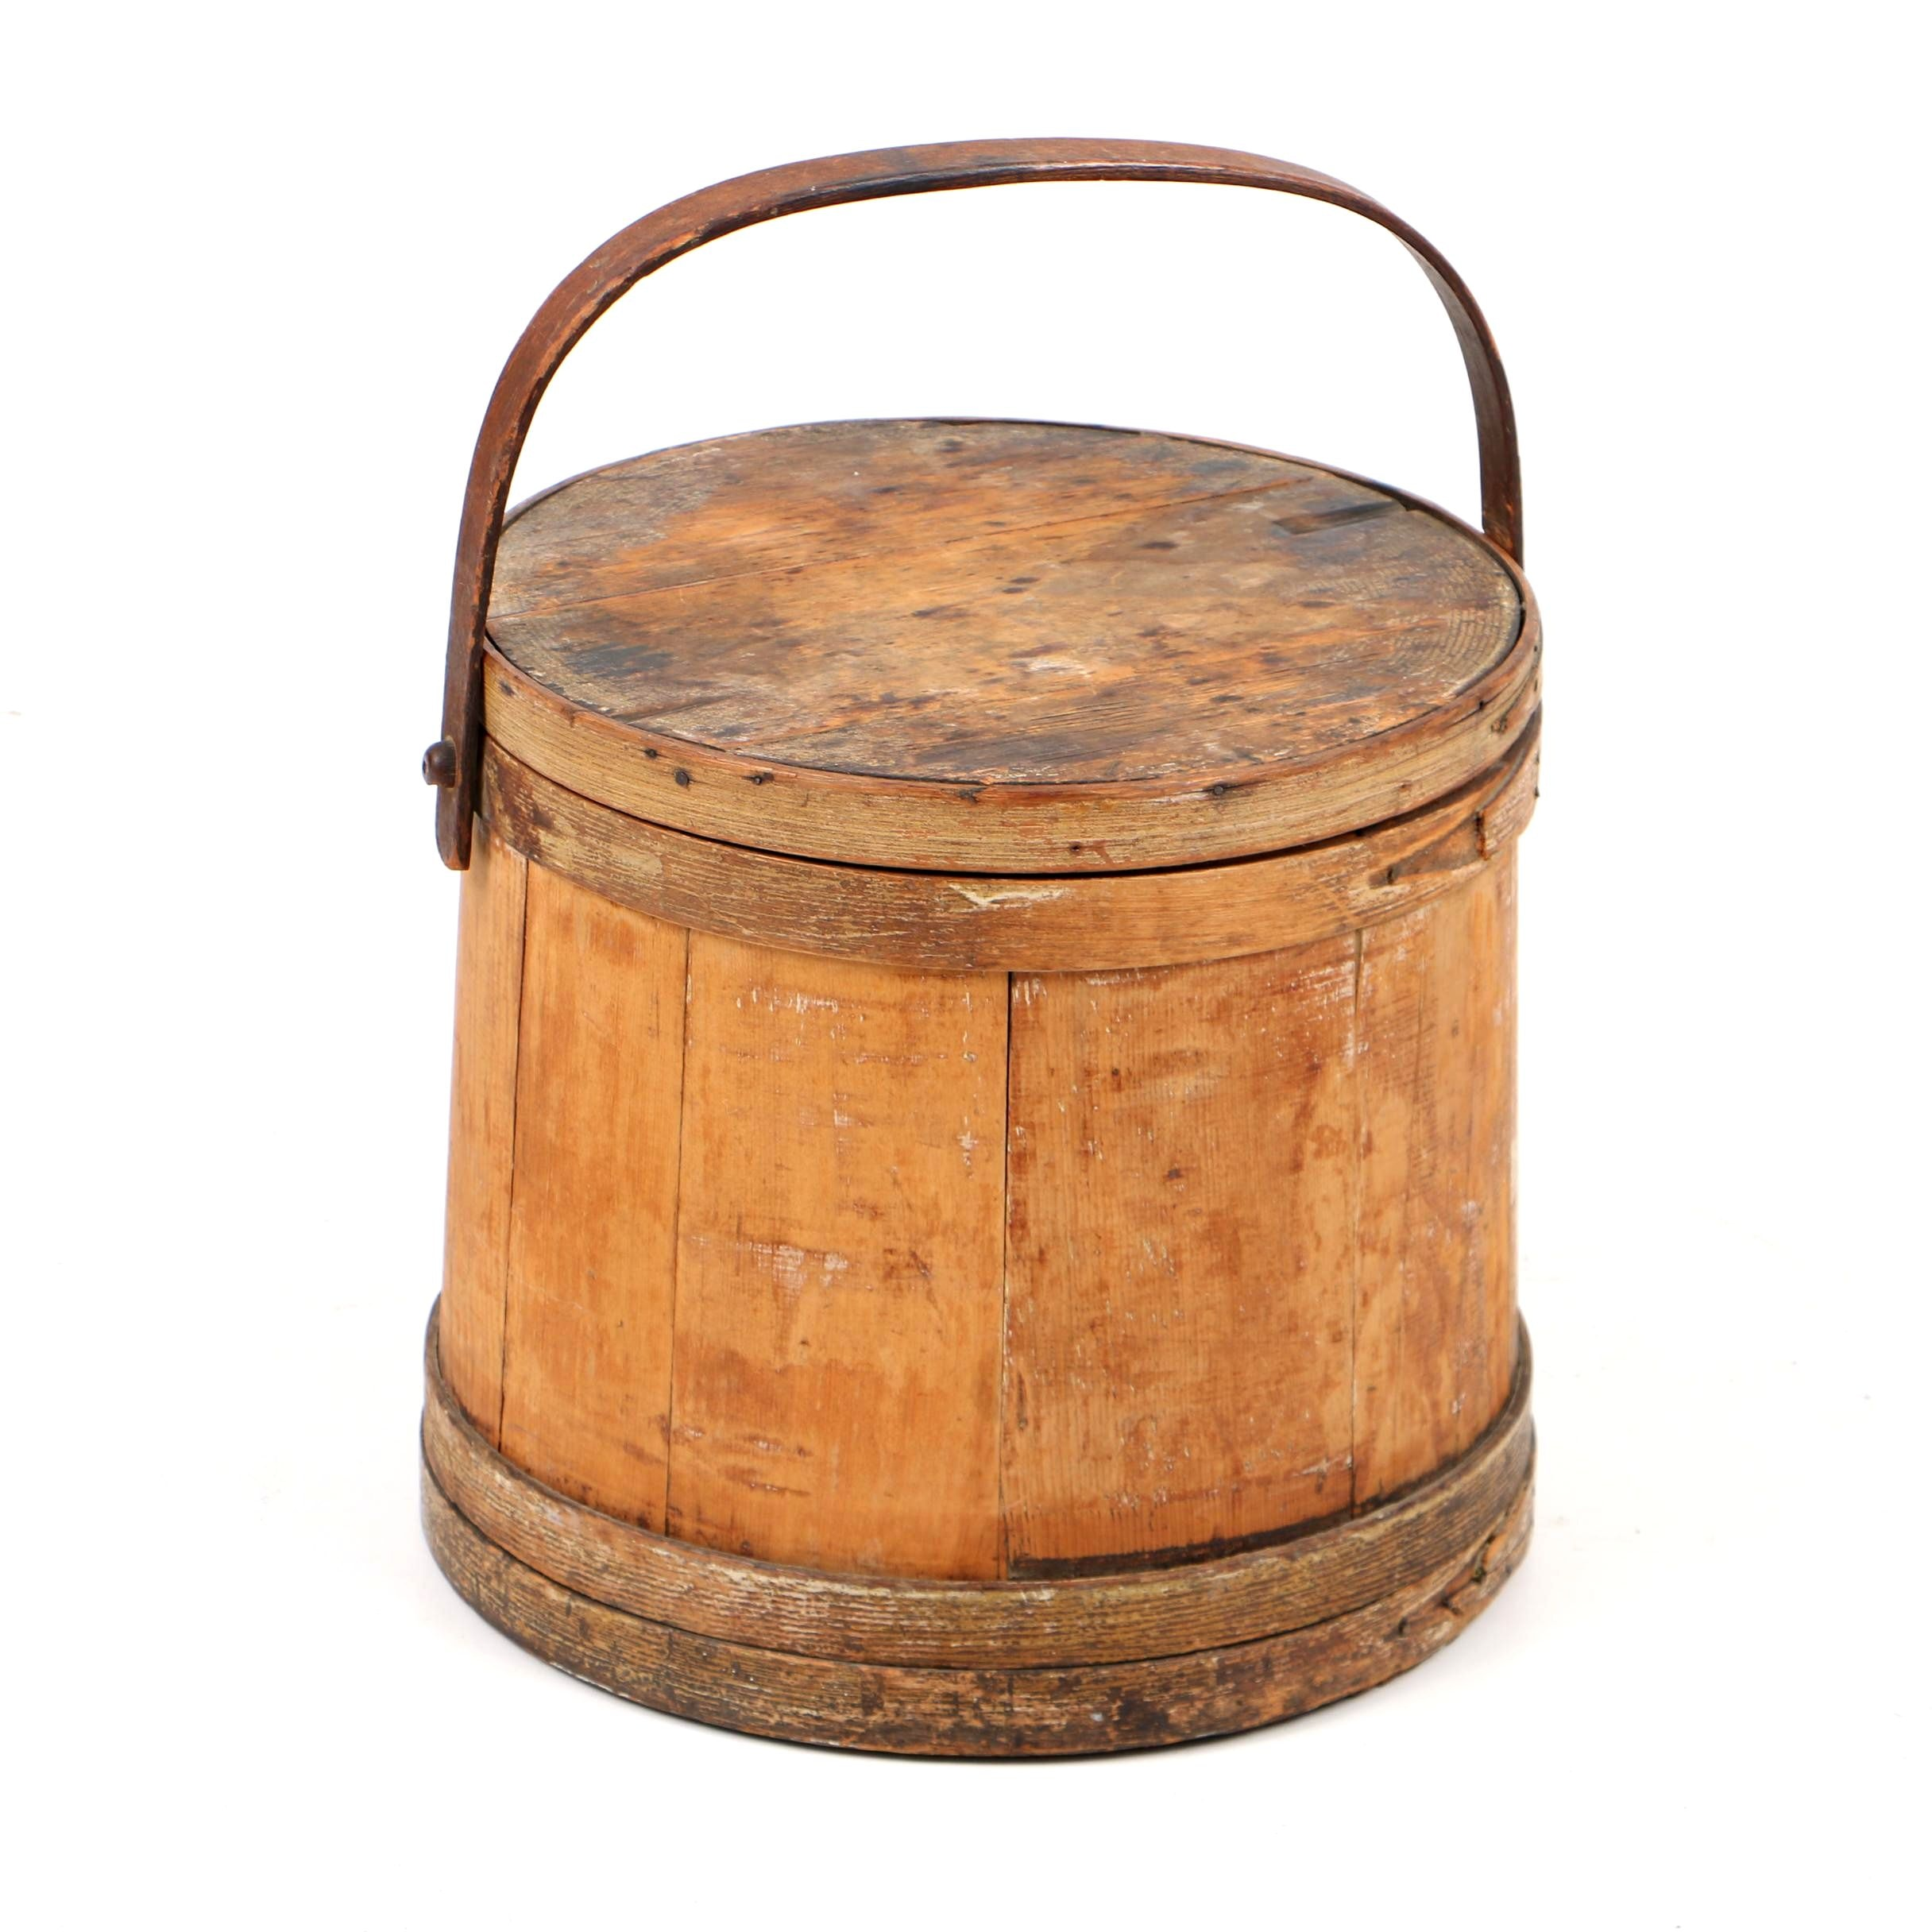 Antique Lidded Firkin, Late 19th Century